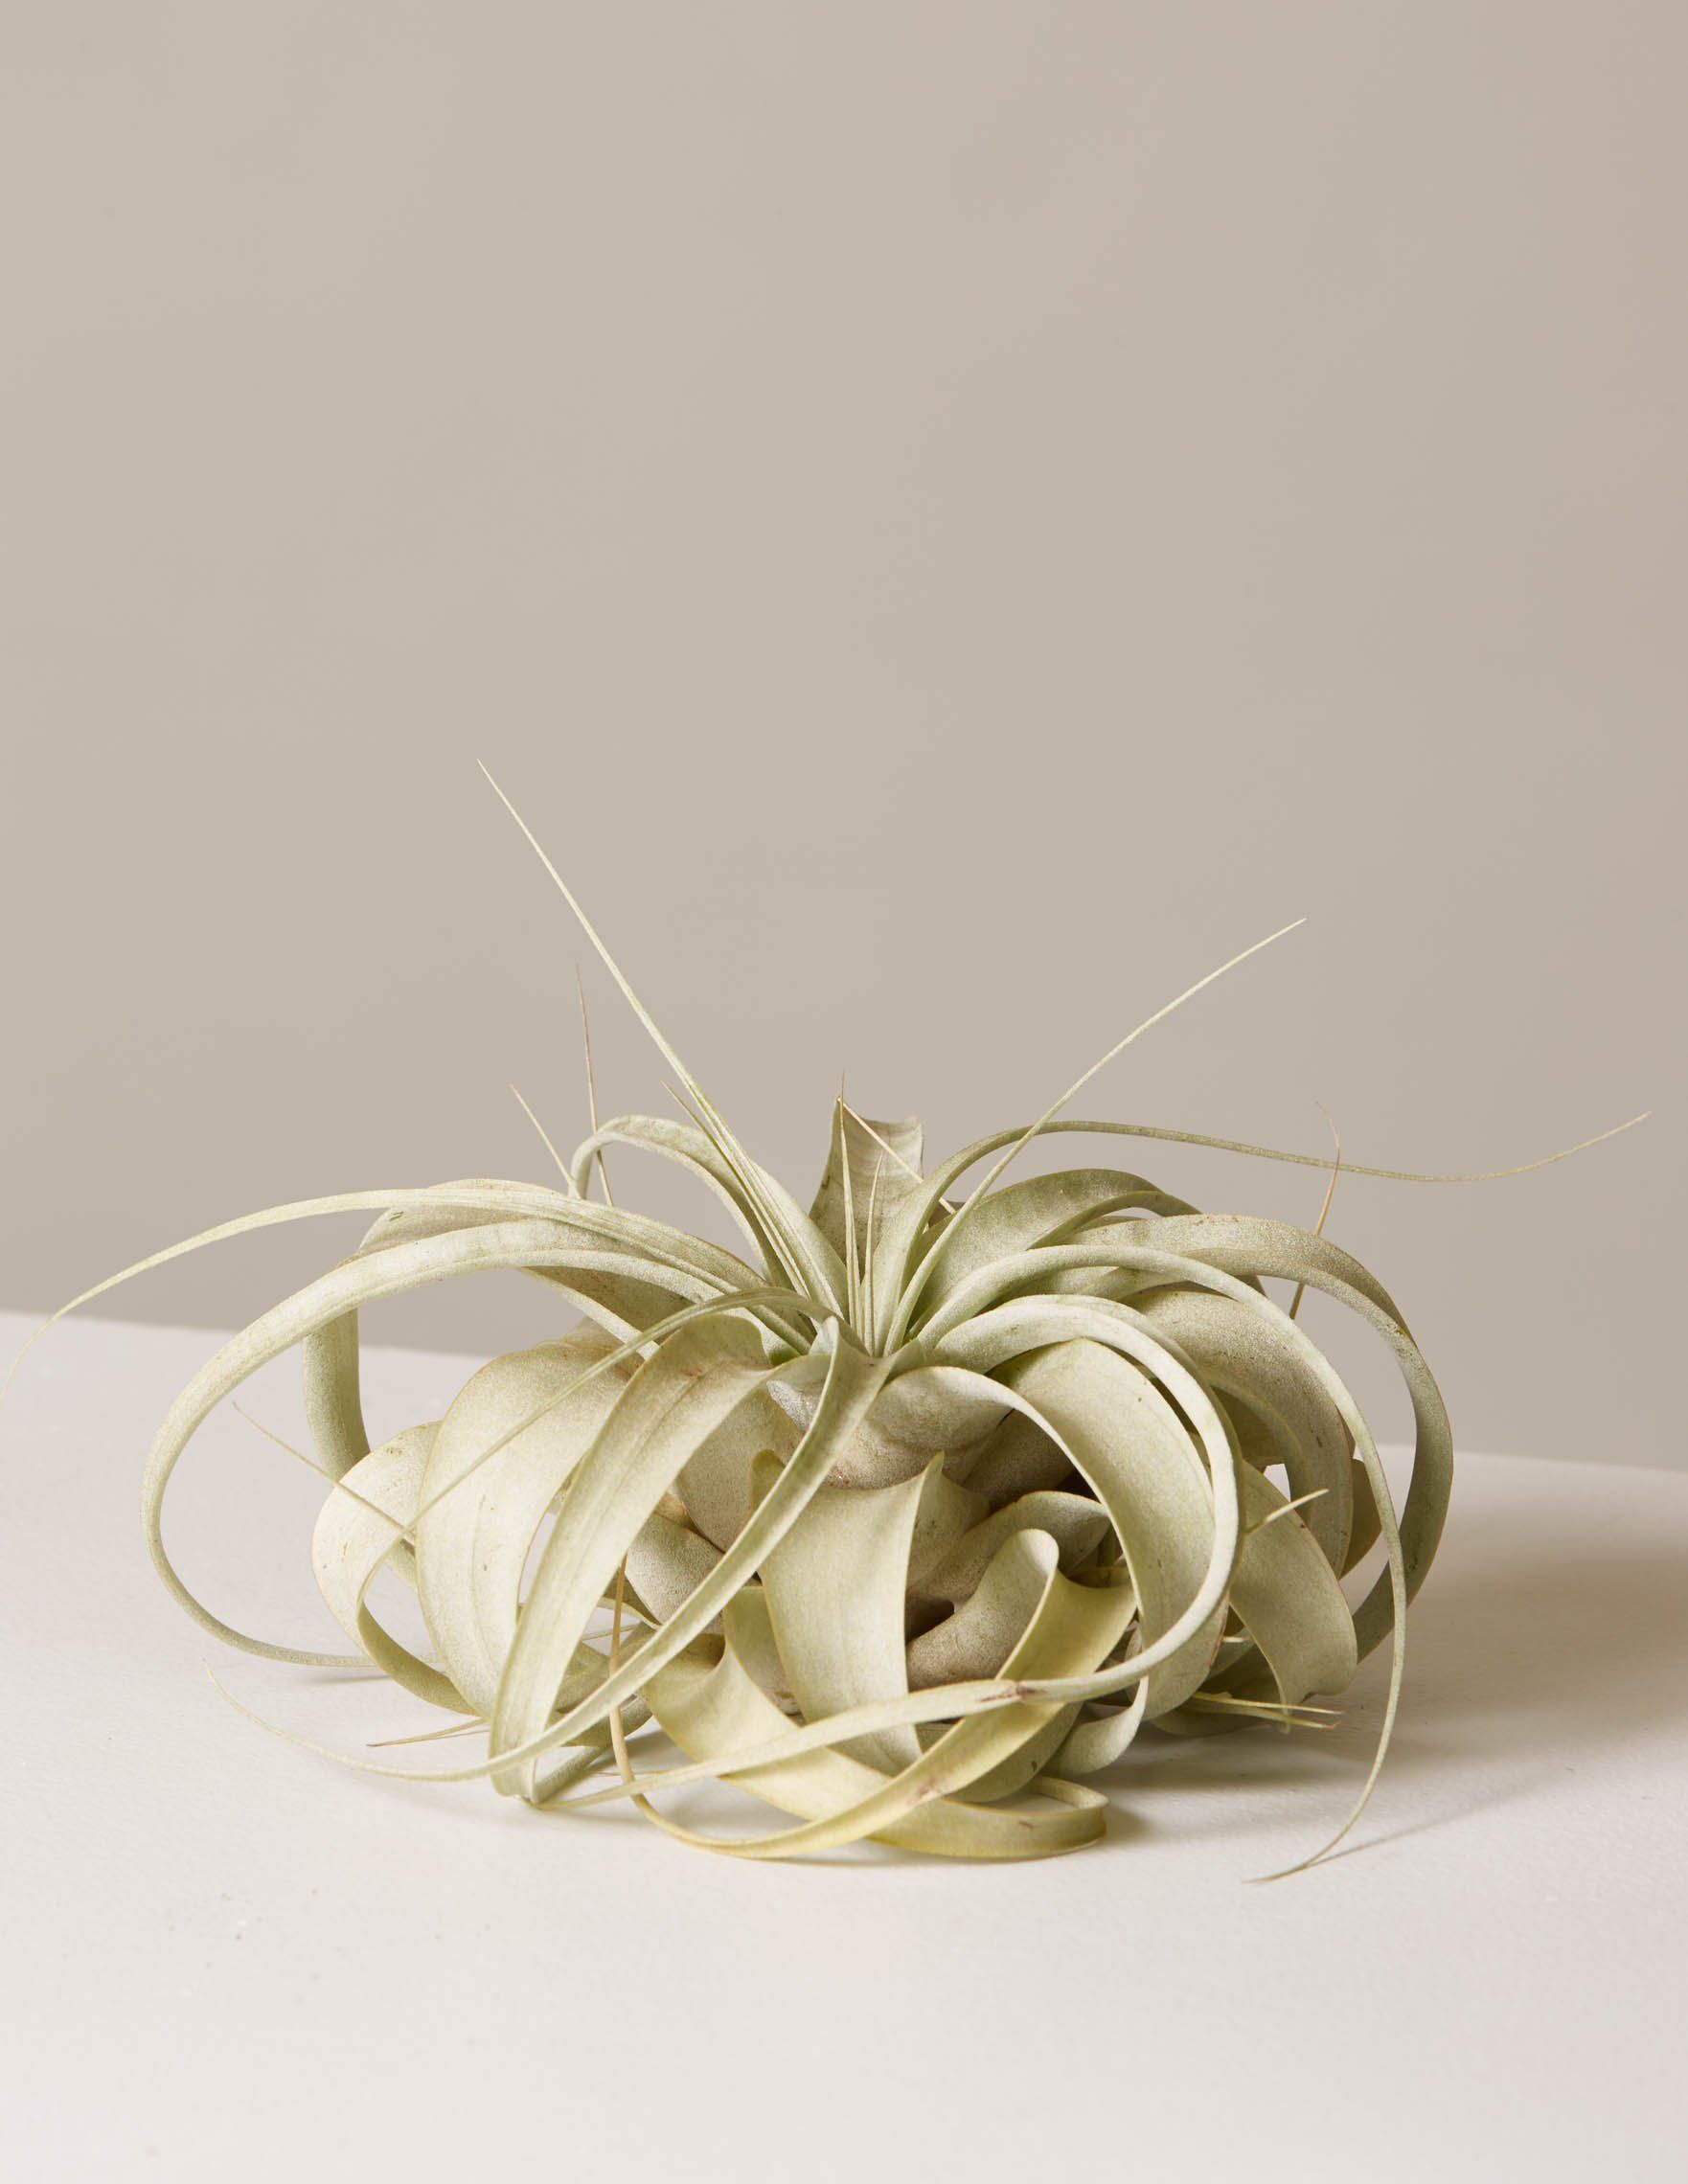 An air plant photographed on a taupe background.